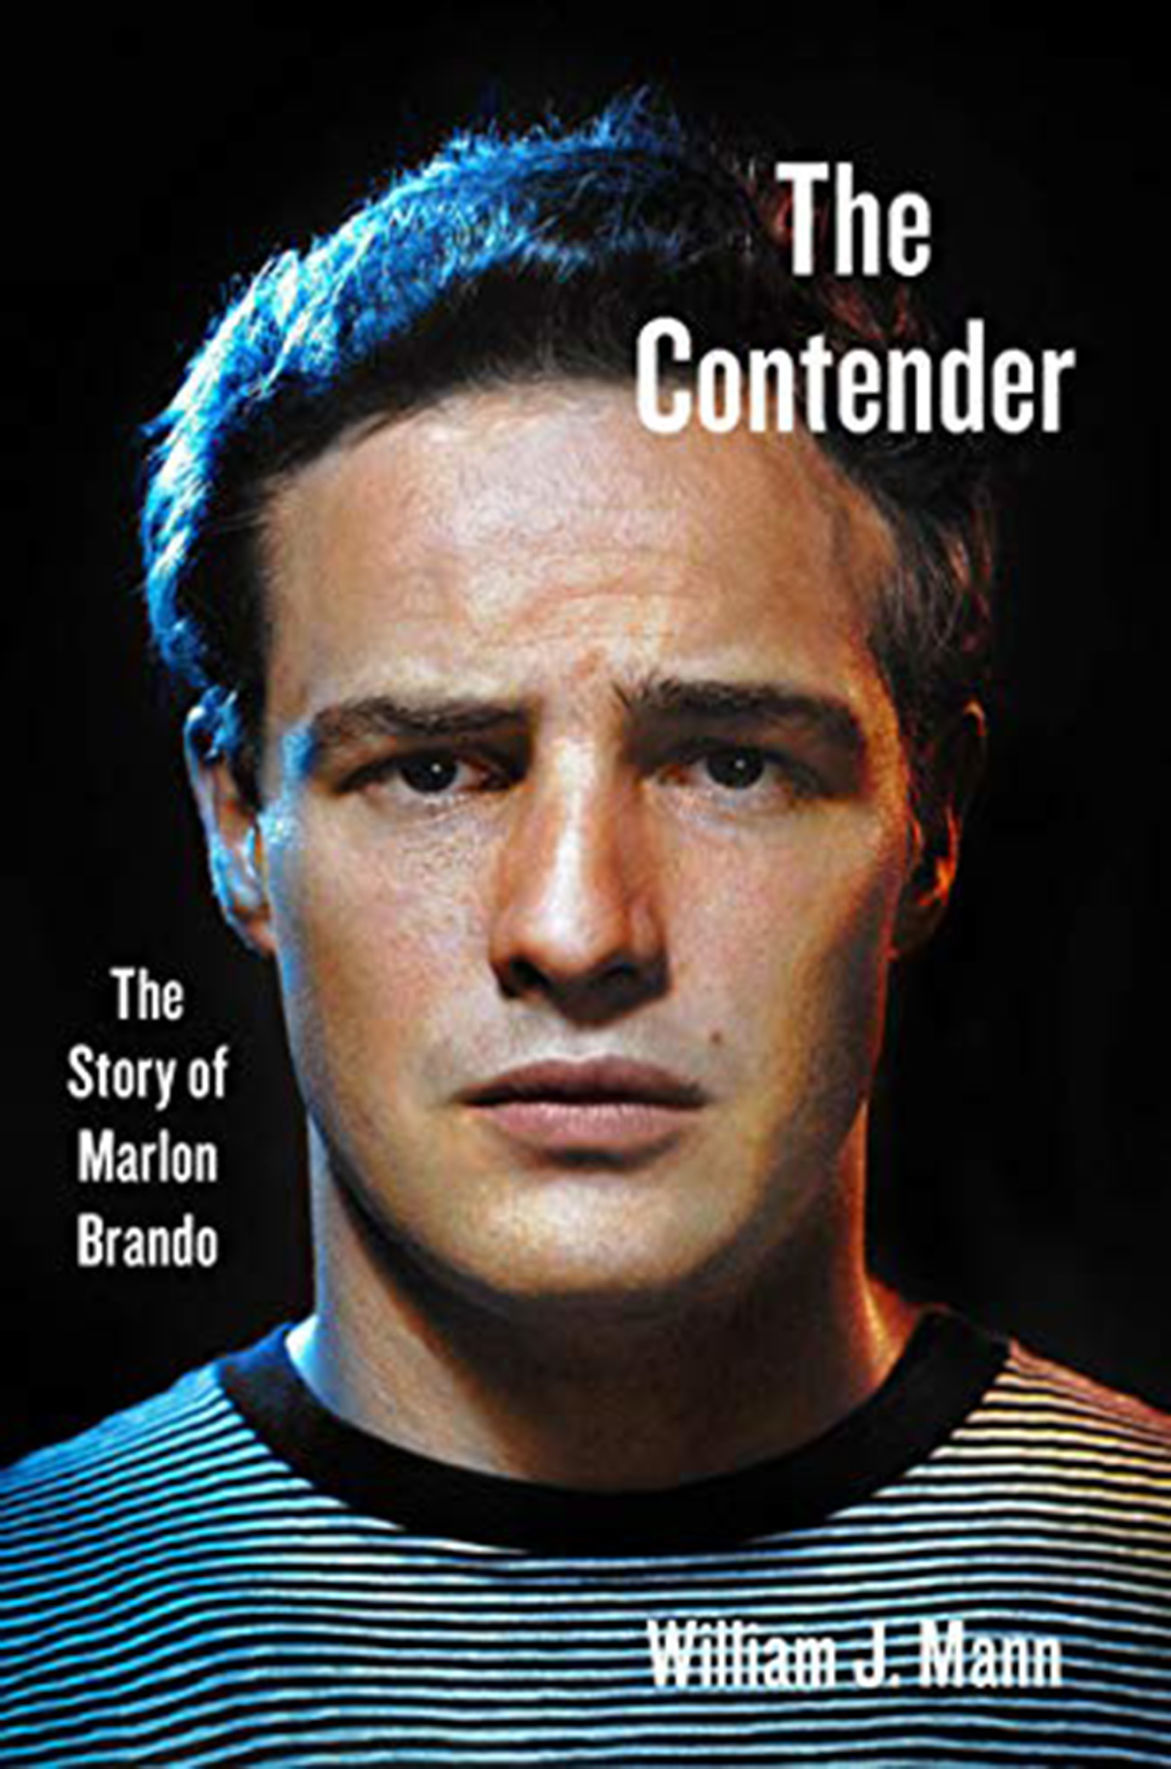 BOOKS-BOOK-CONTENDER-REVIEW-MCT